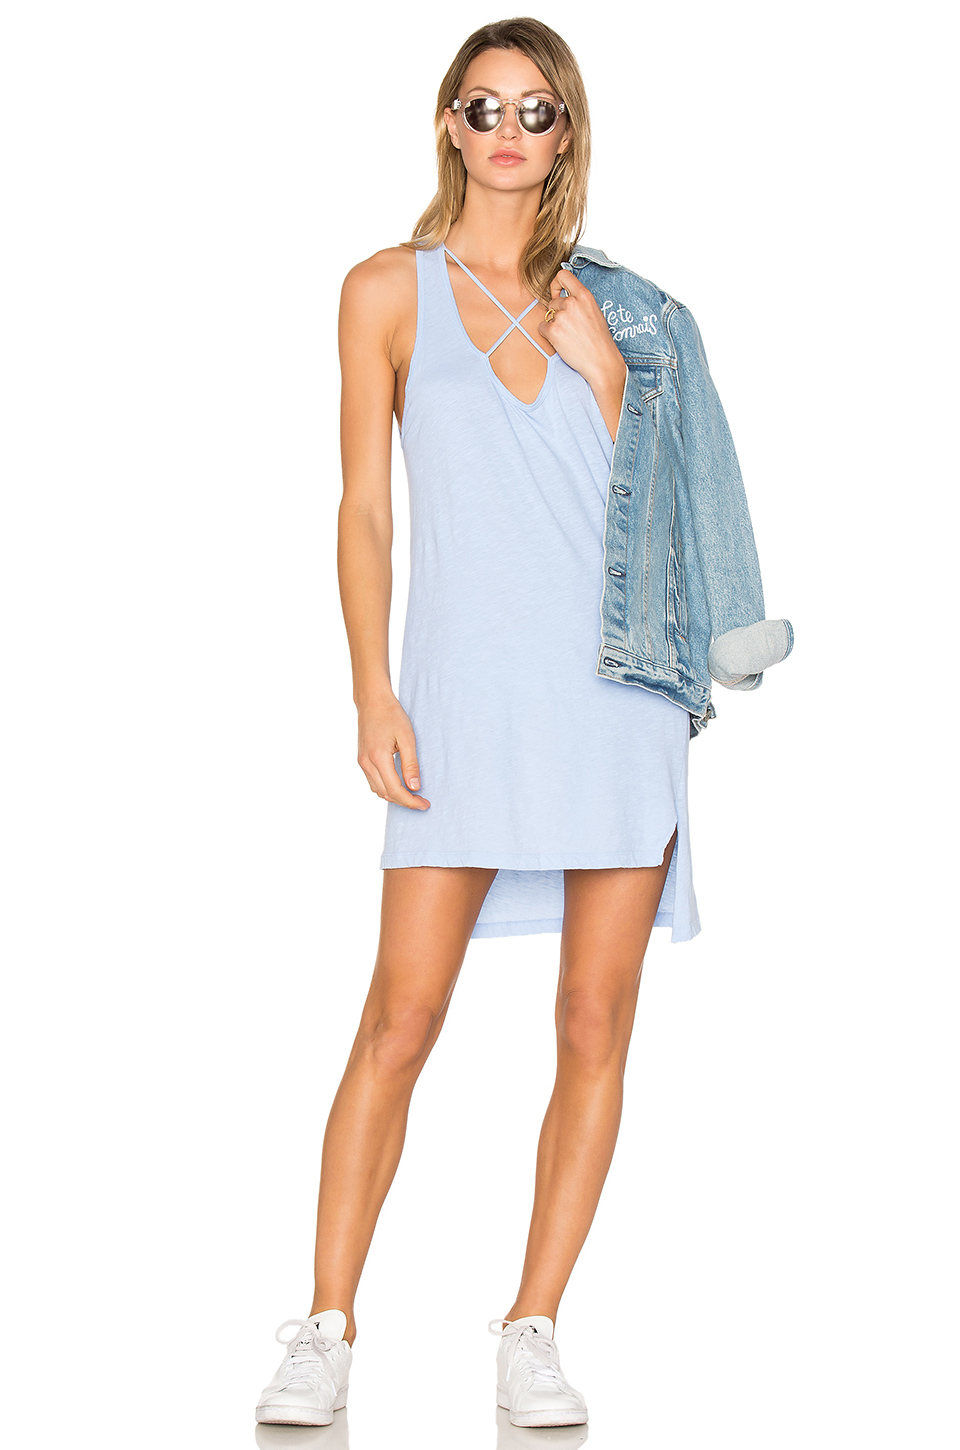 Lna Cross Strap Tank Dress In Baby Blue